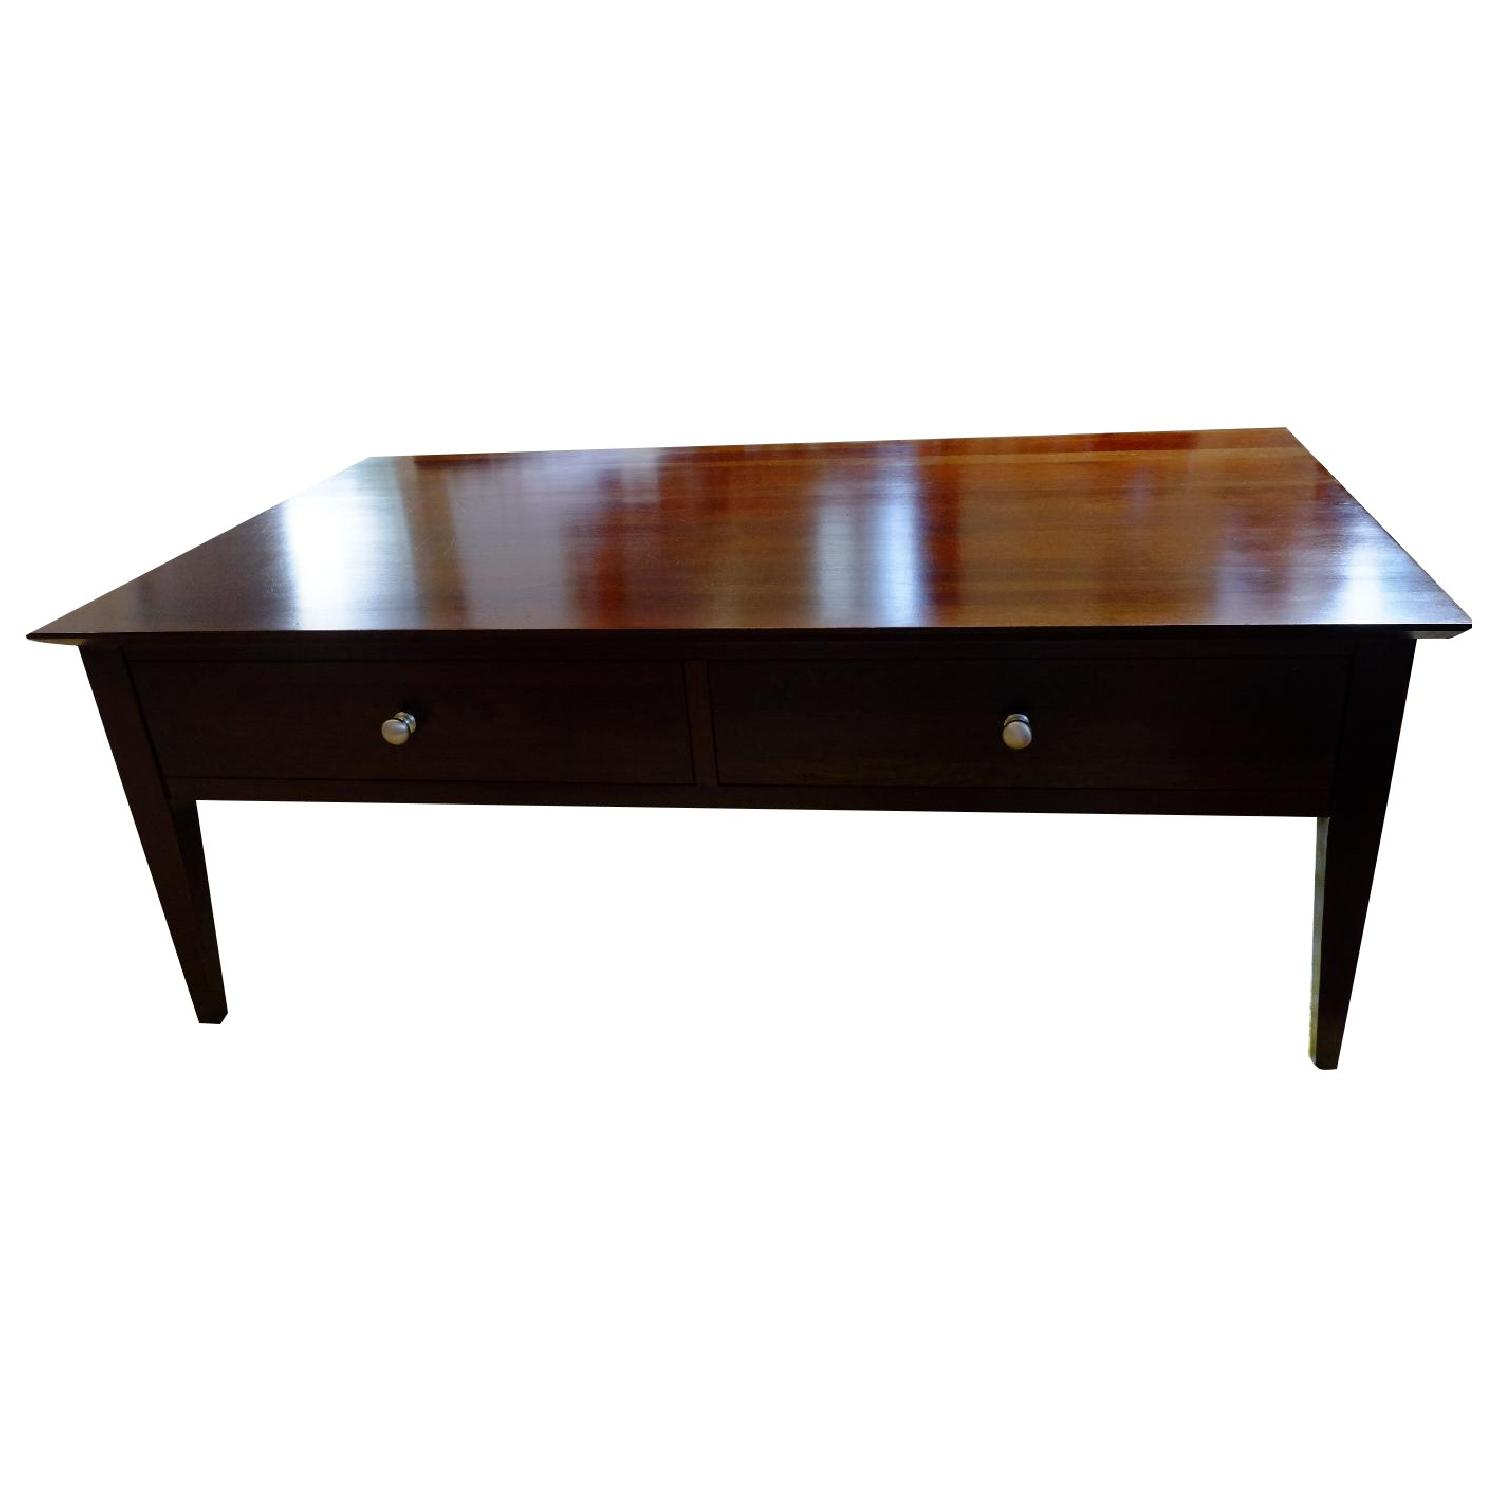 Ethan Allen Arts & Crafts Coffee Table